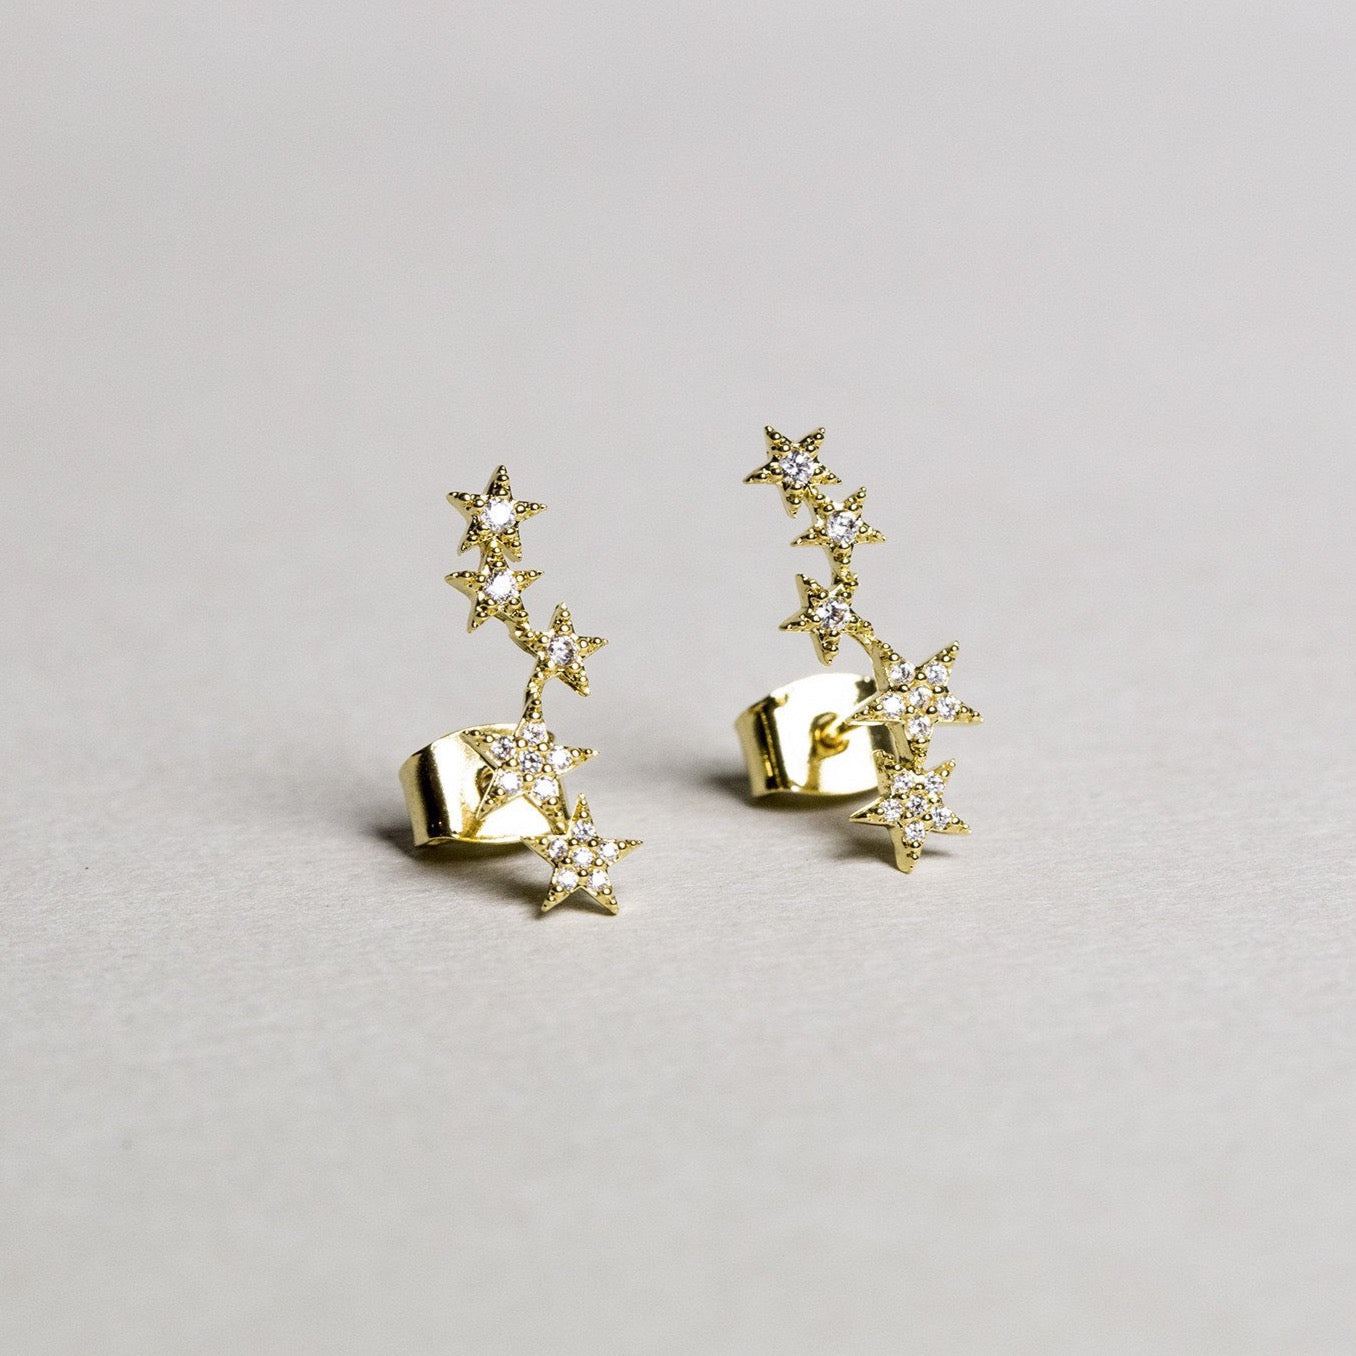 gold plated silver star tower stud earrings